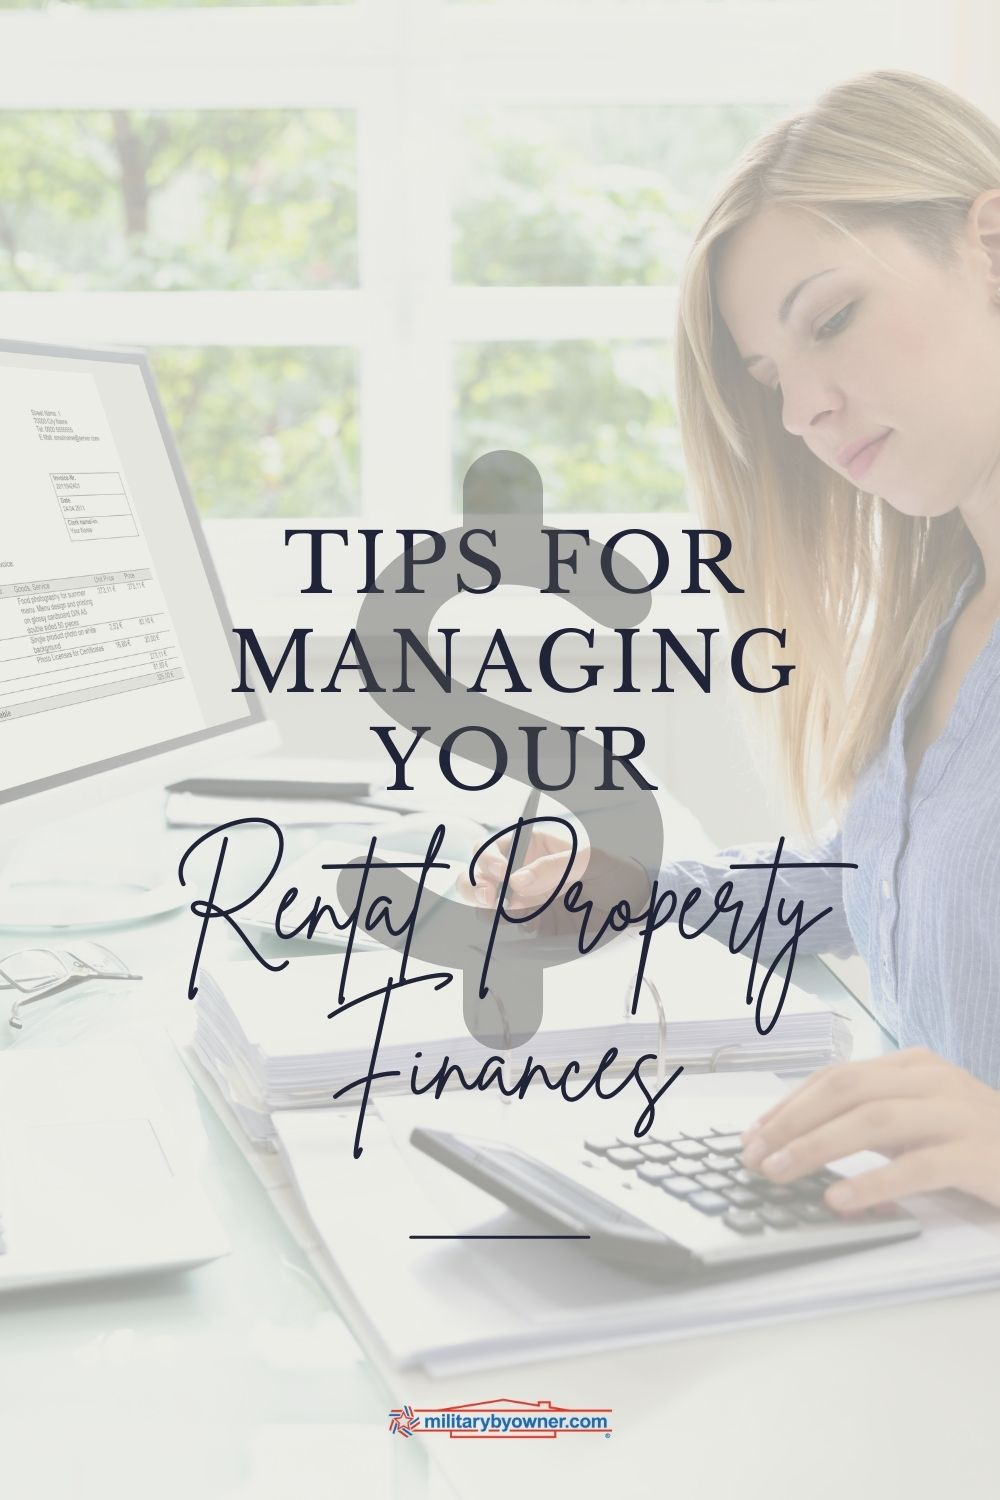 Tips_for_Managing_Your_Rental_Property_Finances